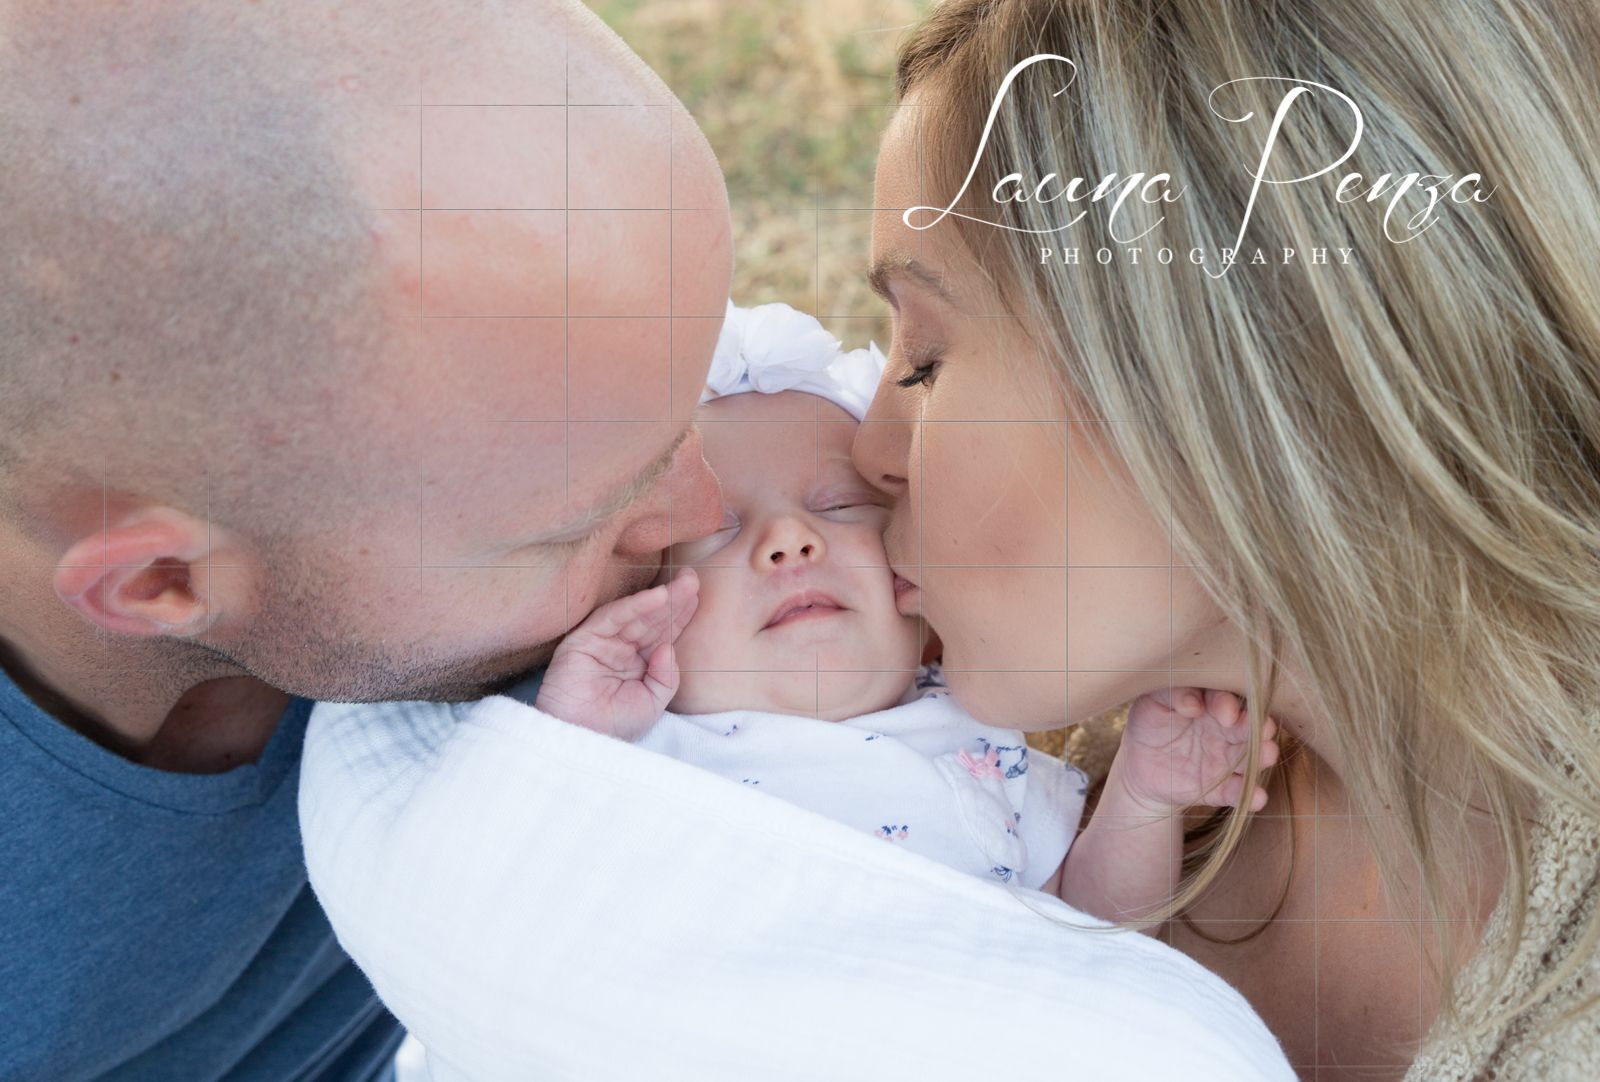 Specializing in Family Portraiture